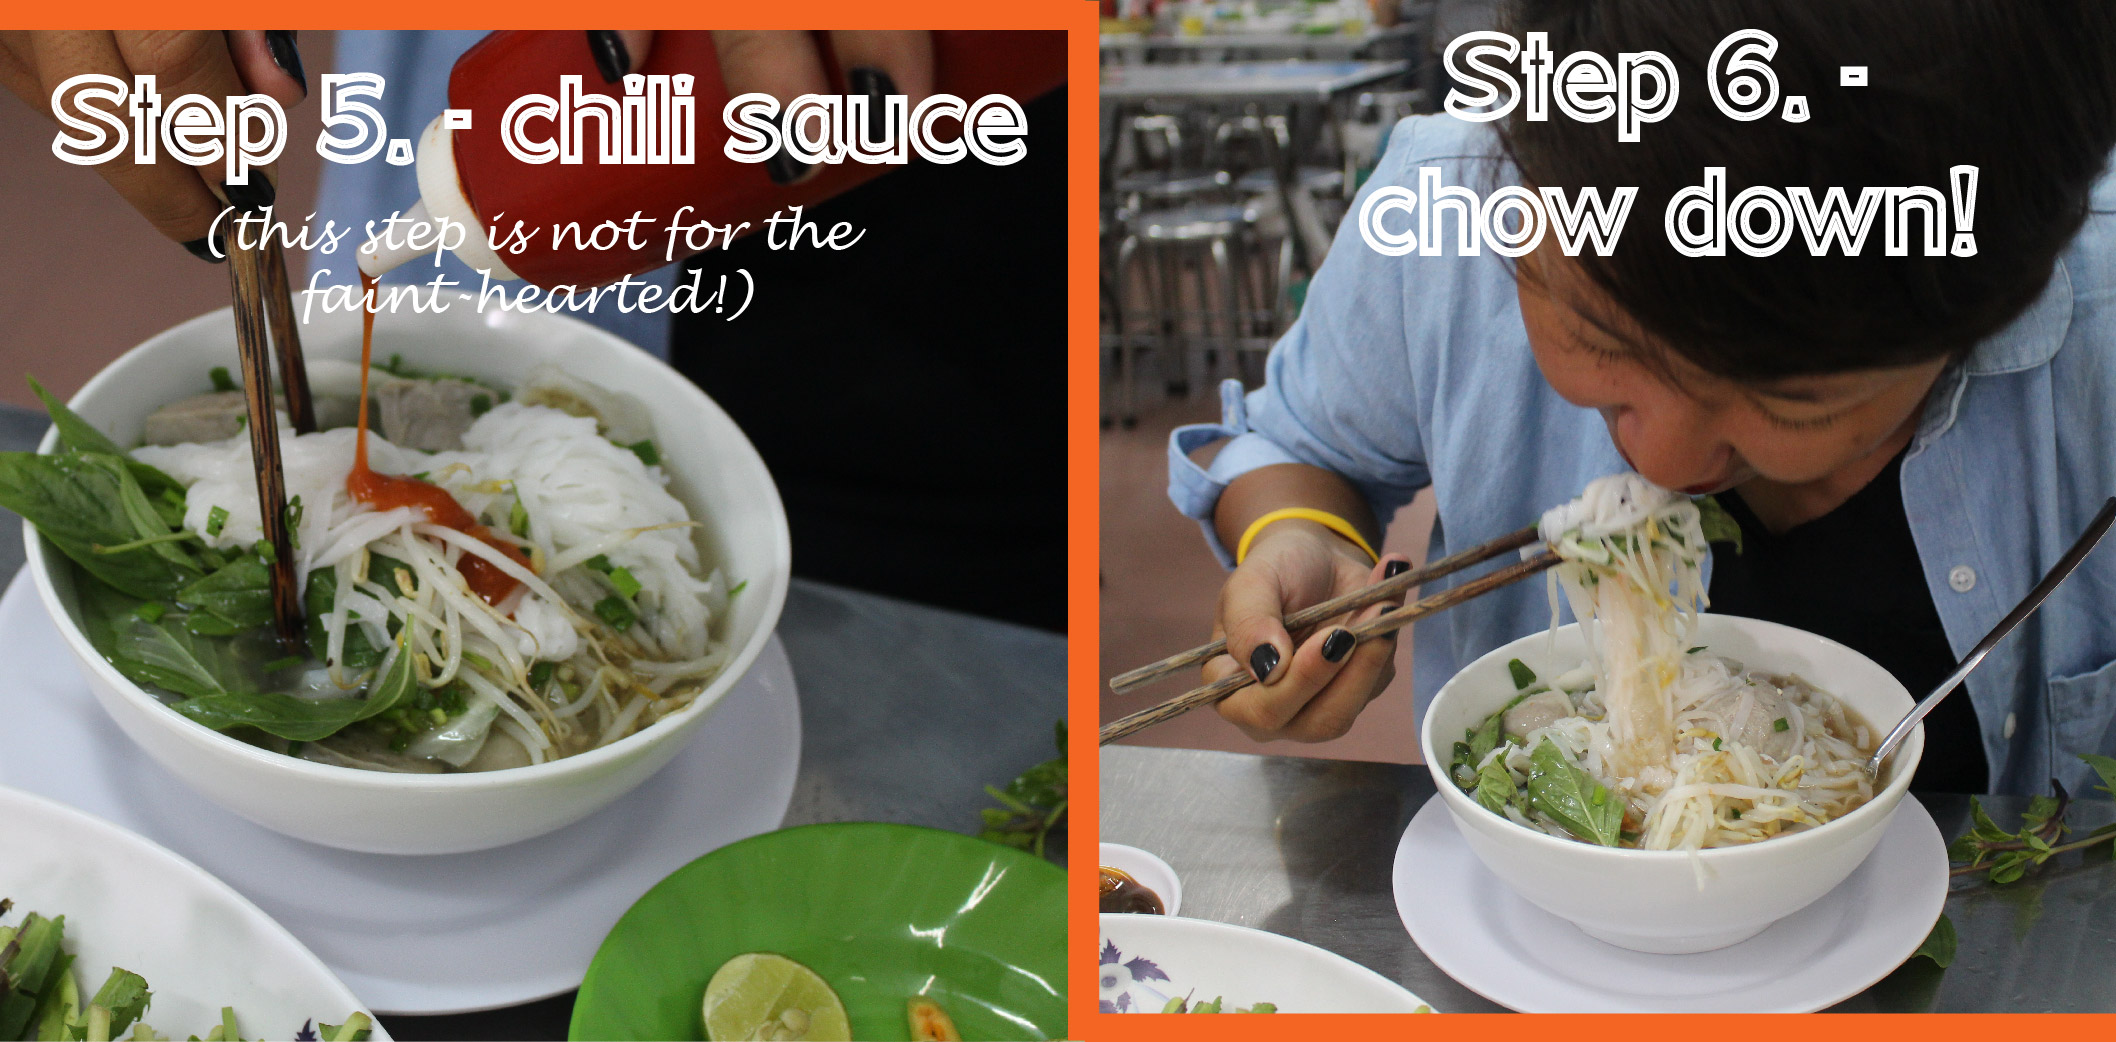 When in Rome, do as the Romans do, right? Well this step is not for the faint-hearted. It's how the locals eat their Phở, and adds a nice ...